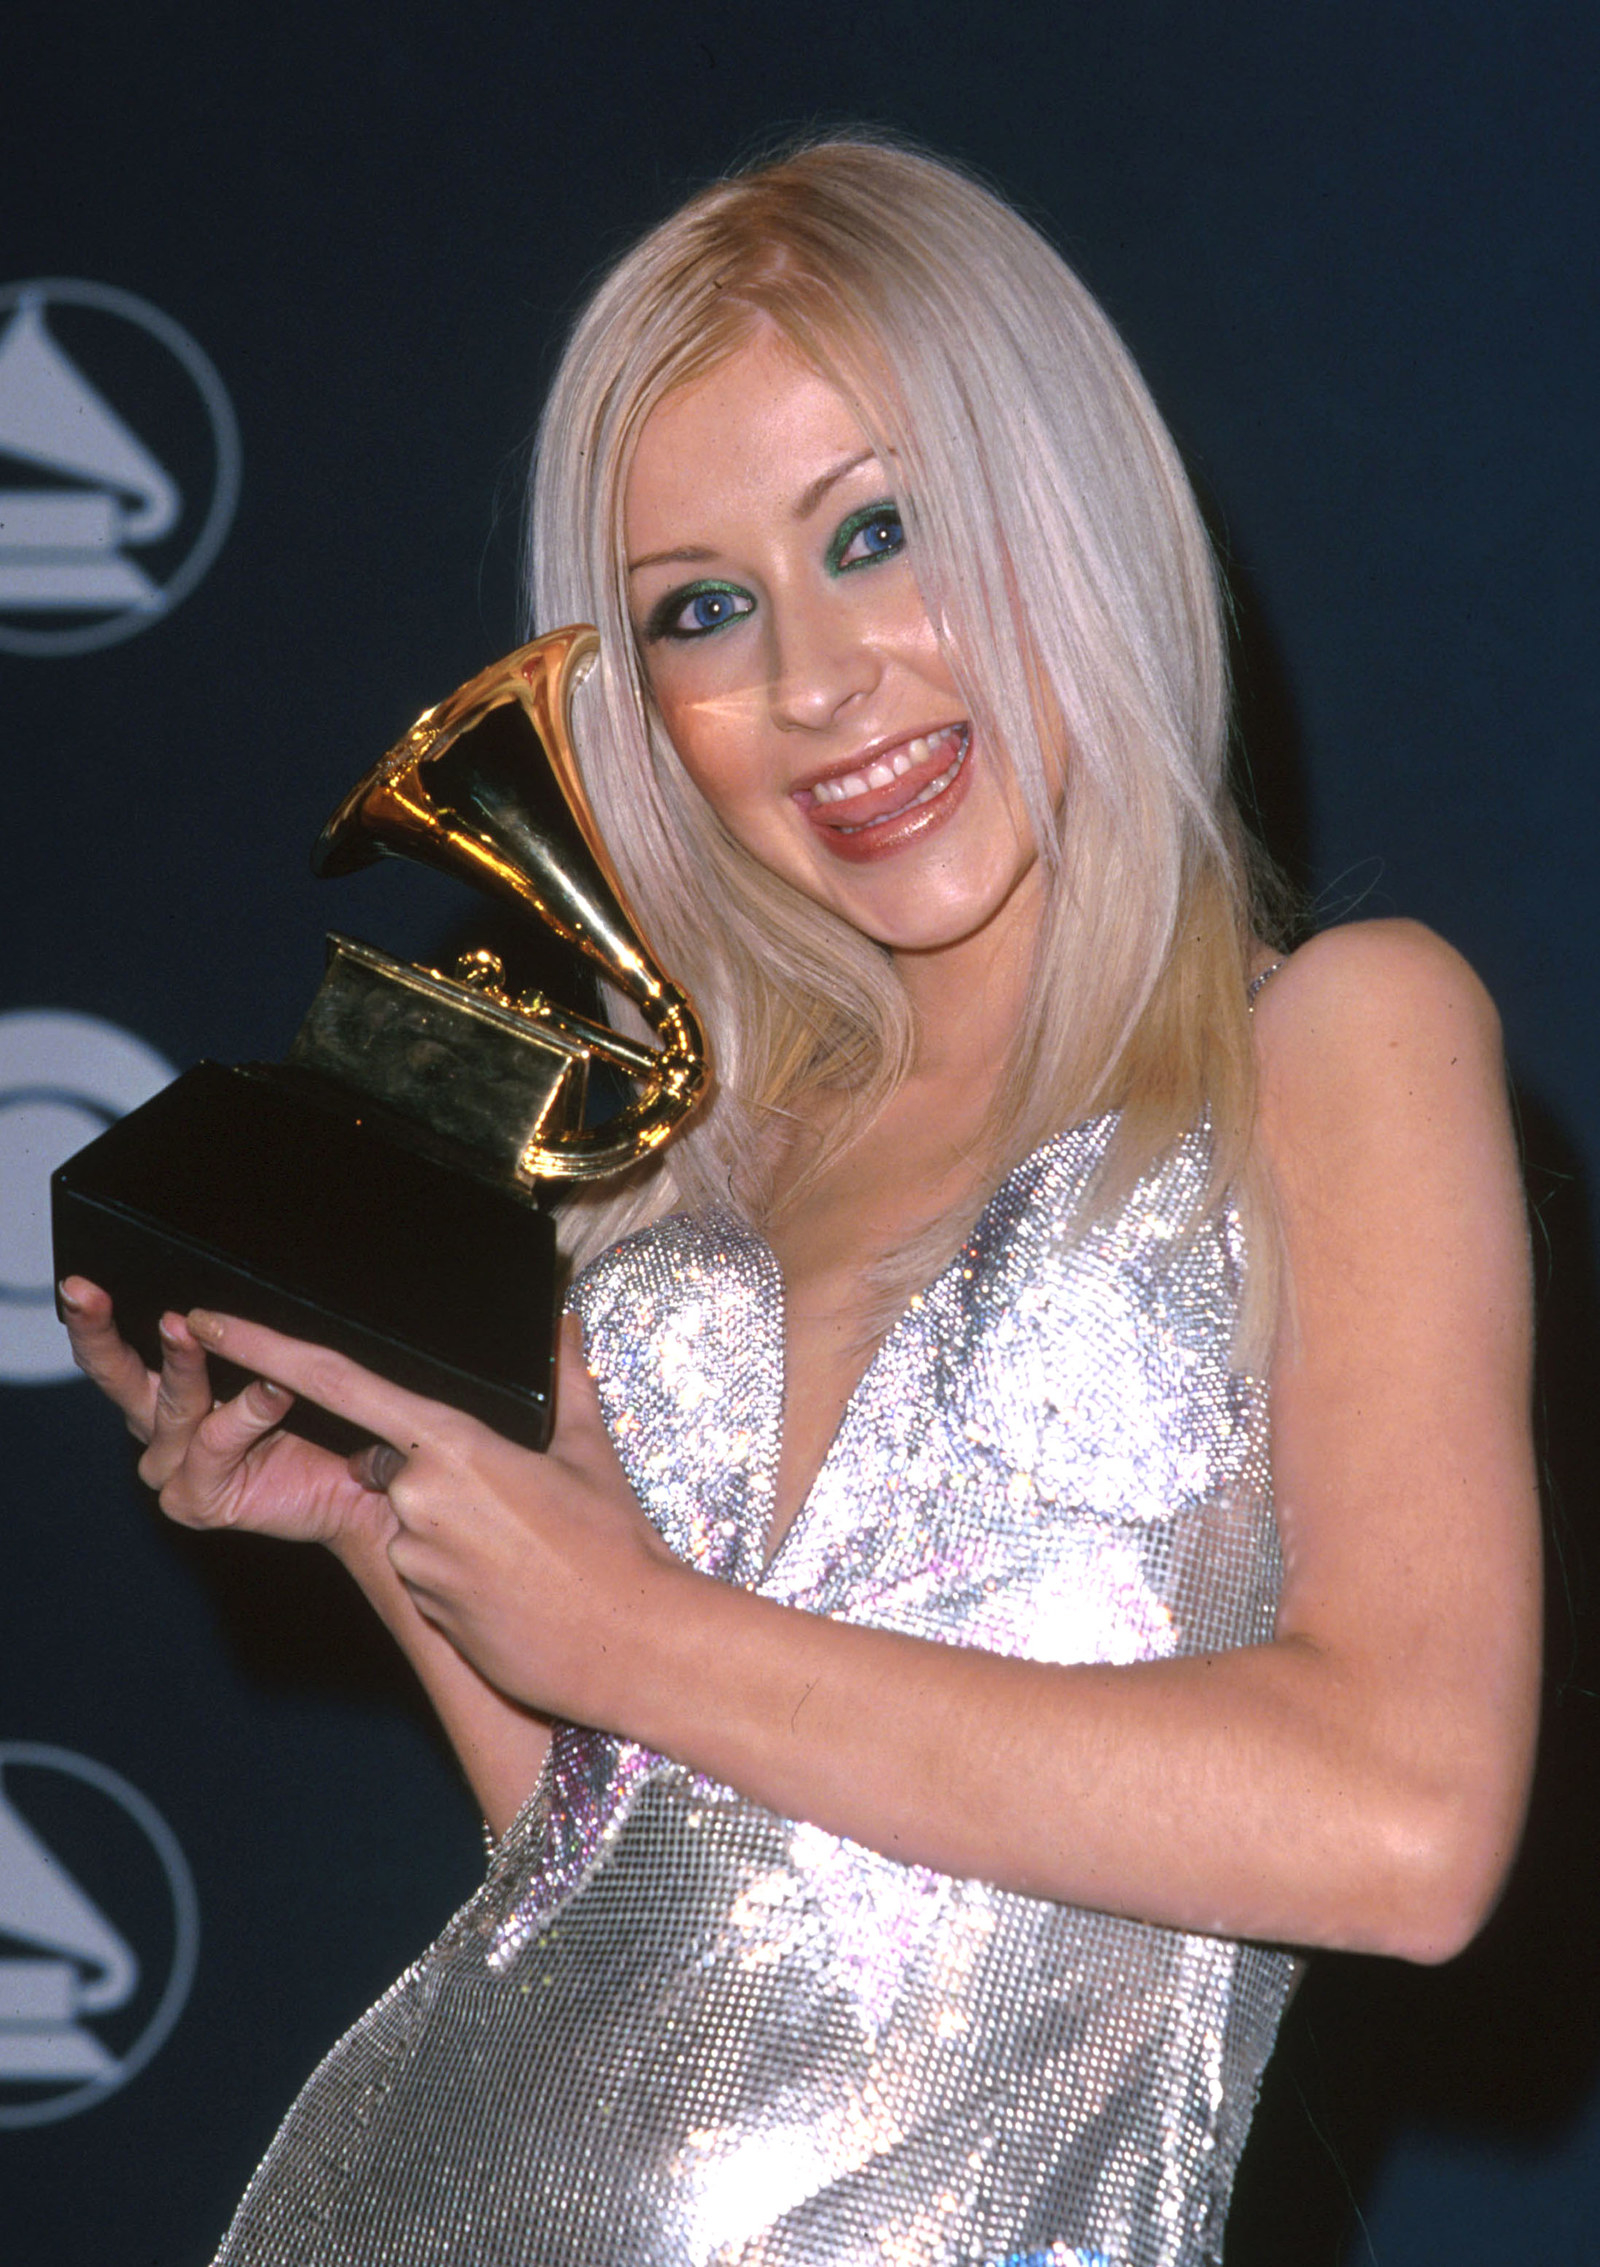 She won against Macy Gray, Kid Rock, Britney Spears and Susan Tedeschi.